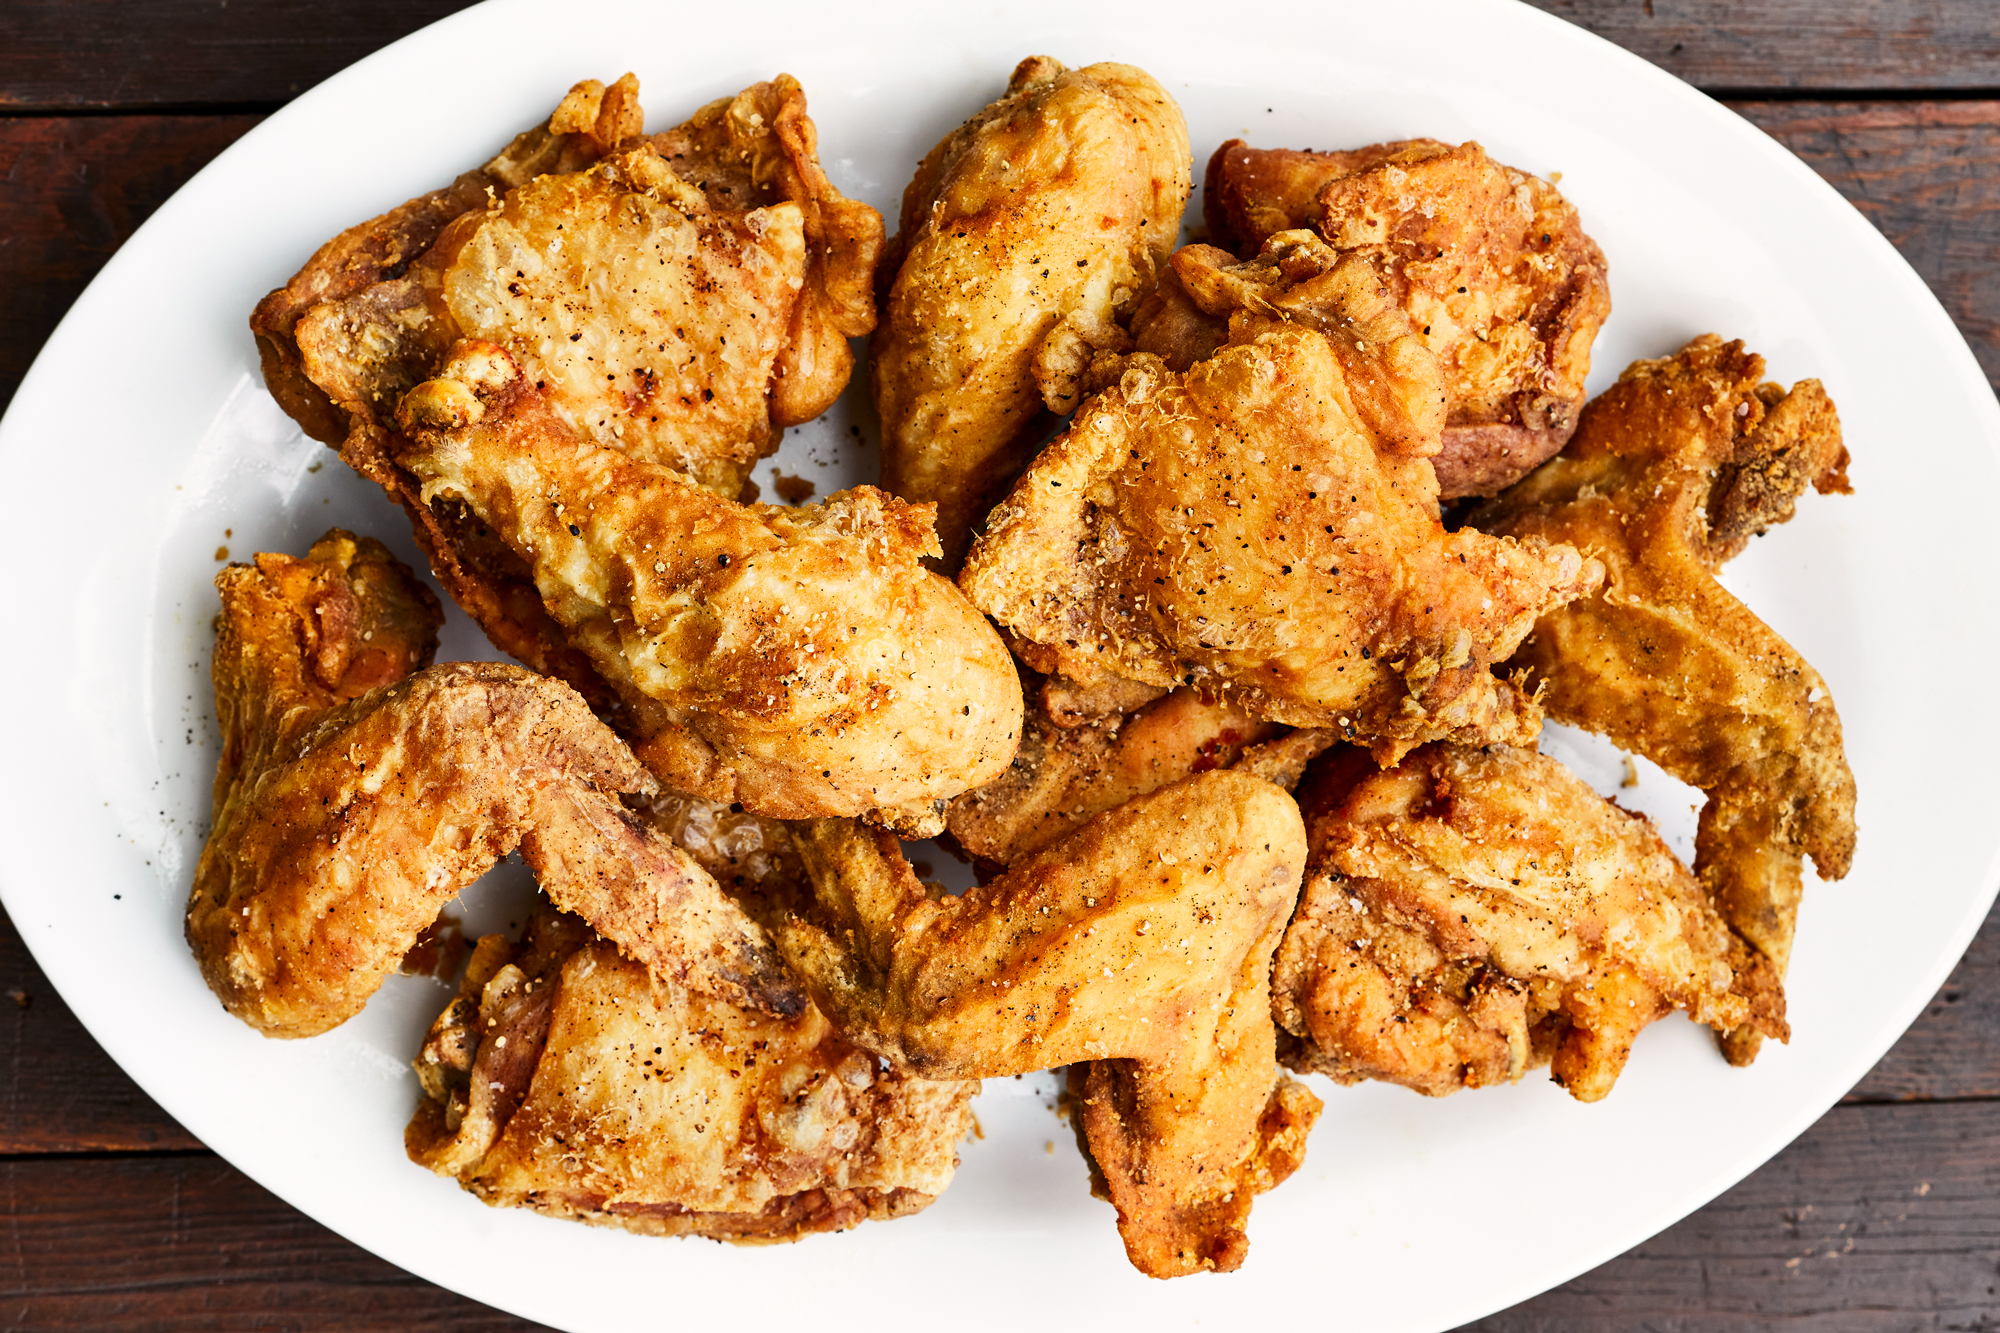 Easiest Way To Make Fried Chicken Pieces Names